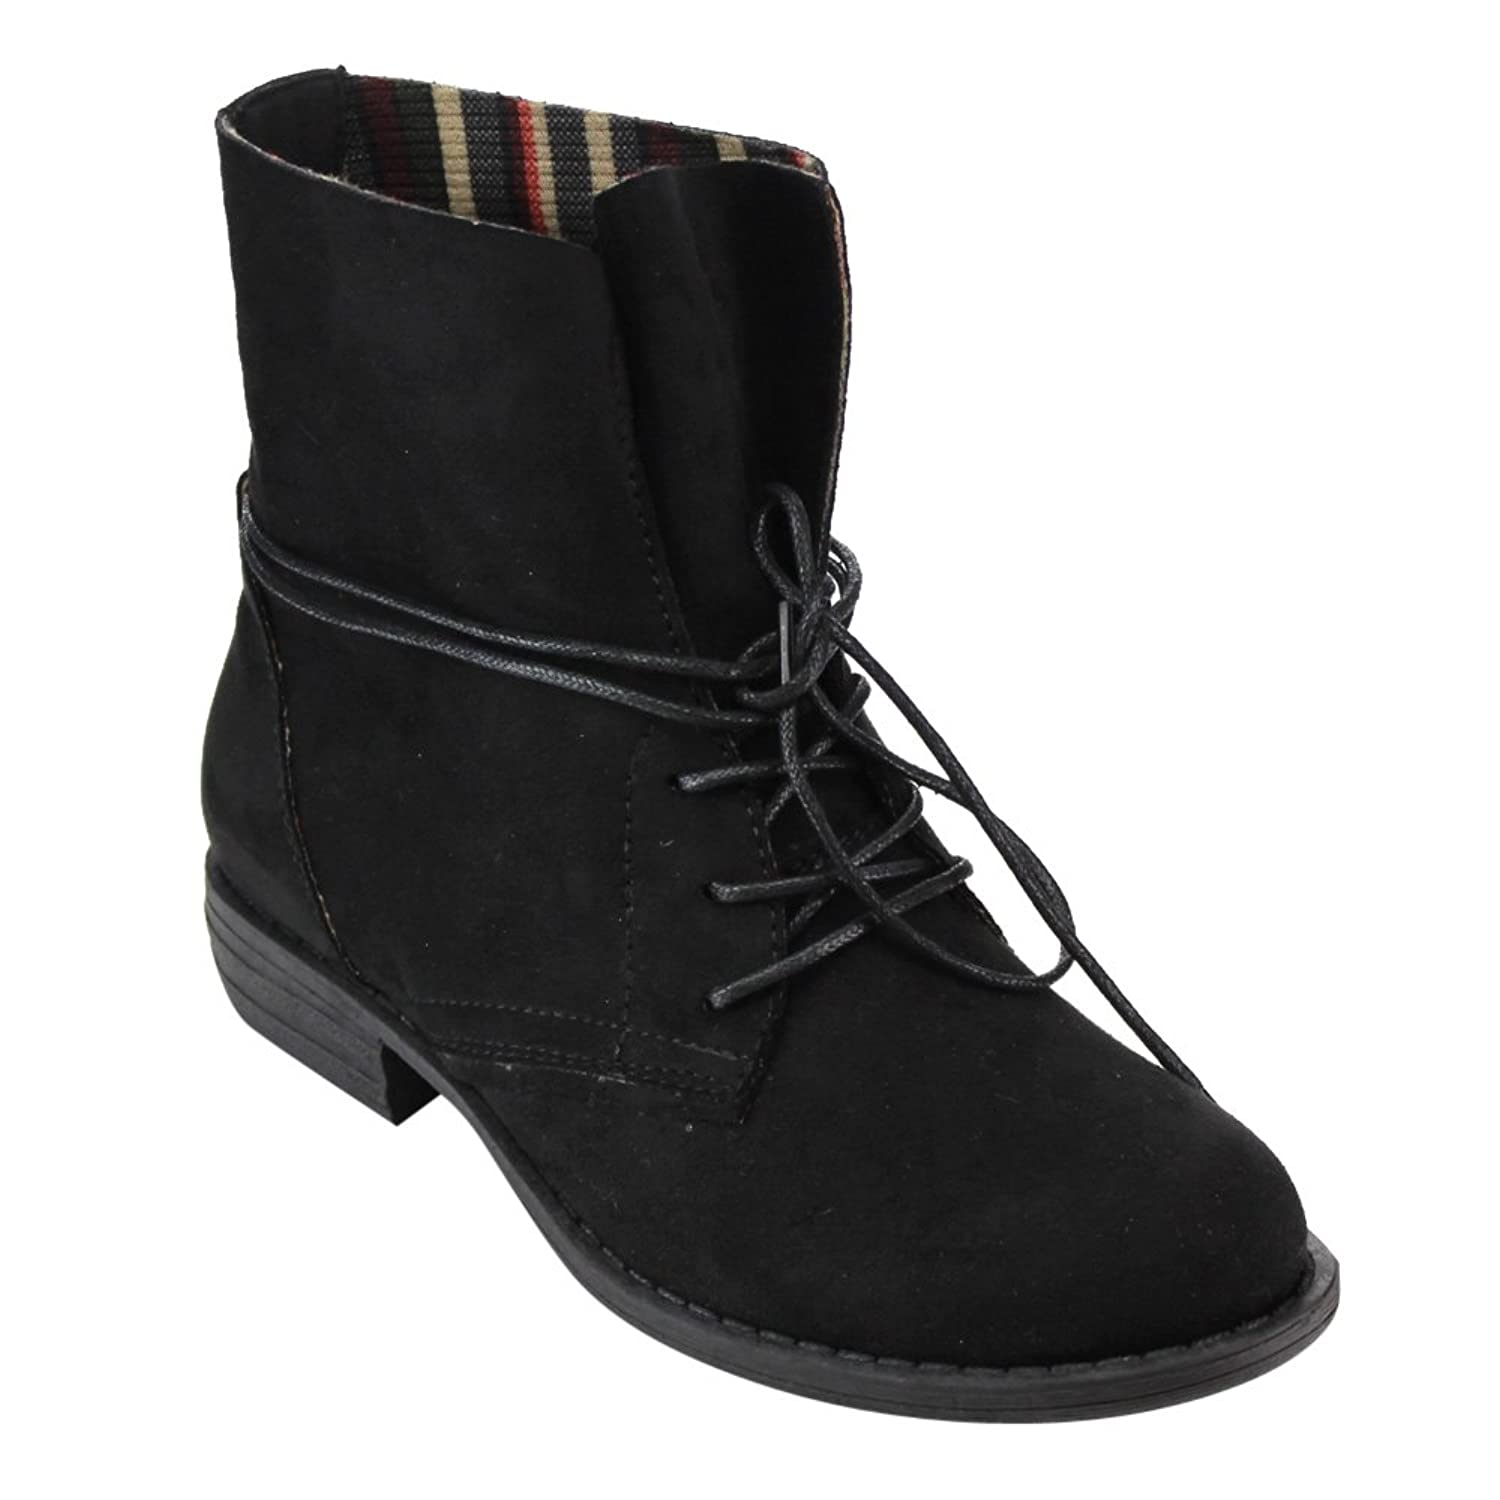 Retro Boots, Granny Boots, 70s Boots  Womens Lace Up Block Heel Ankle Boots $36.13 AT vintagedancer.com